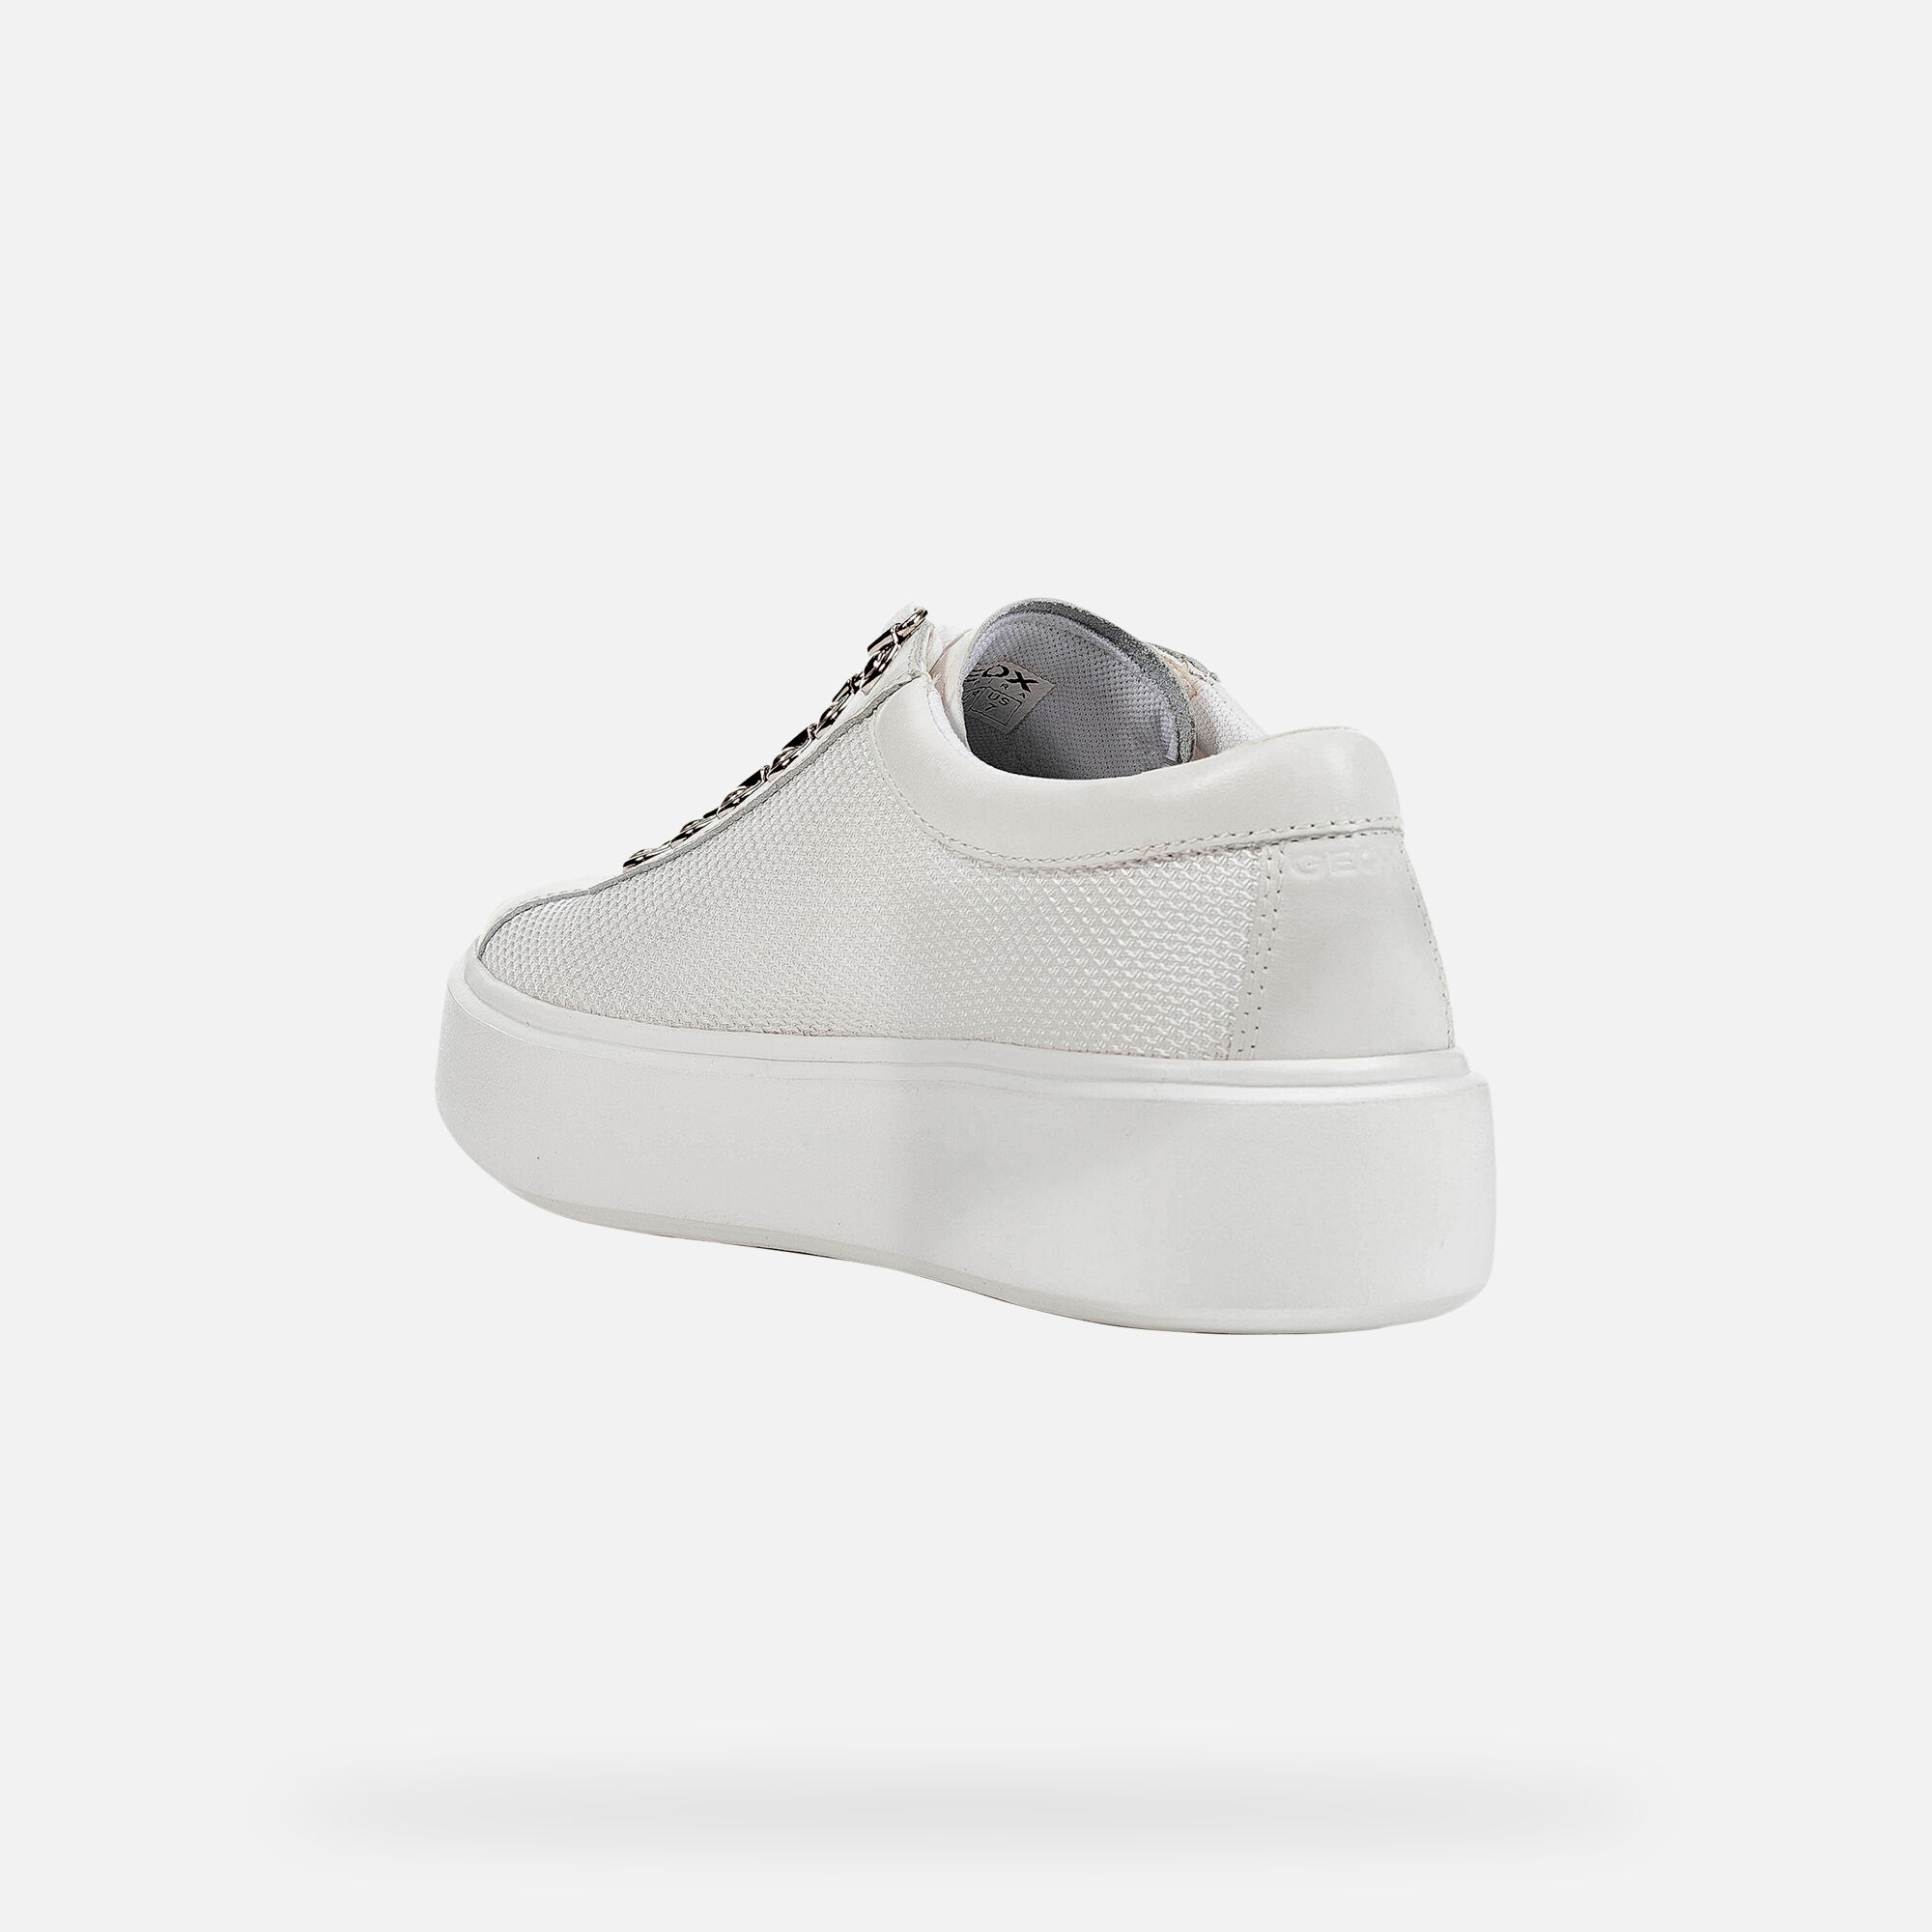 Geox D NHENBUS: White Woman Sneakers   Geox SS19